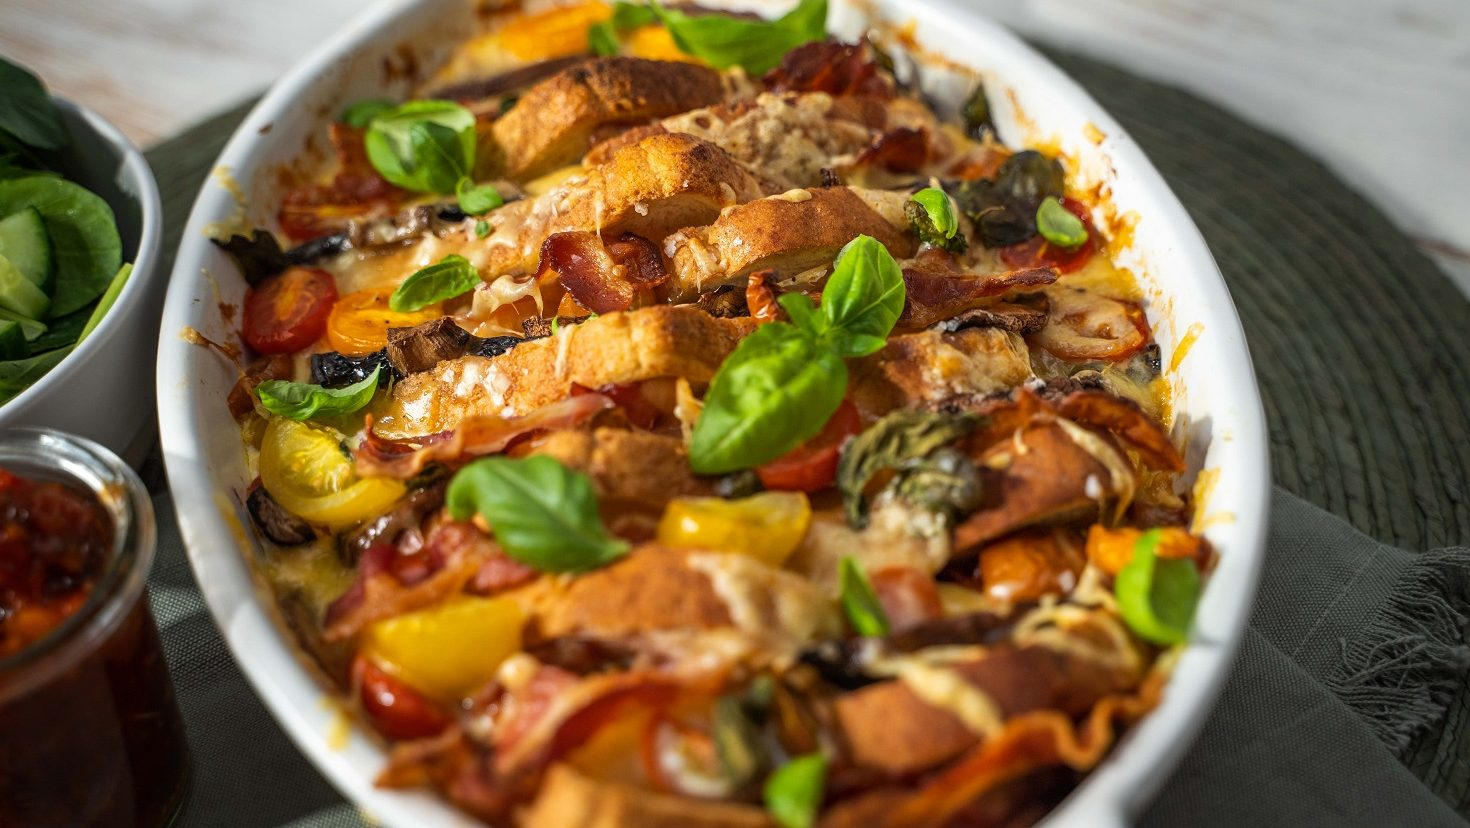 A white oven dish full of bread, bacon, tomato, mushroom bake topped with basil leaves.